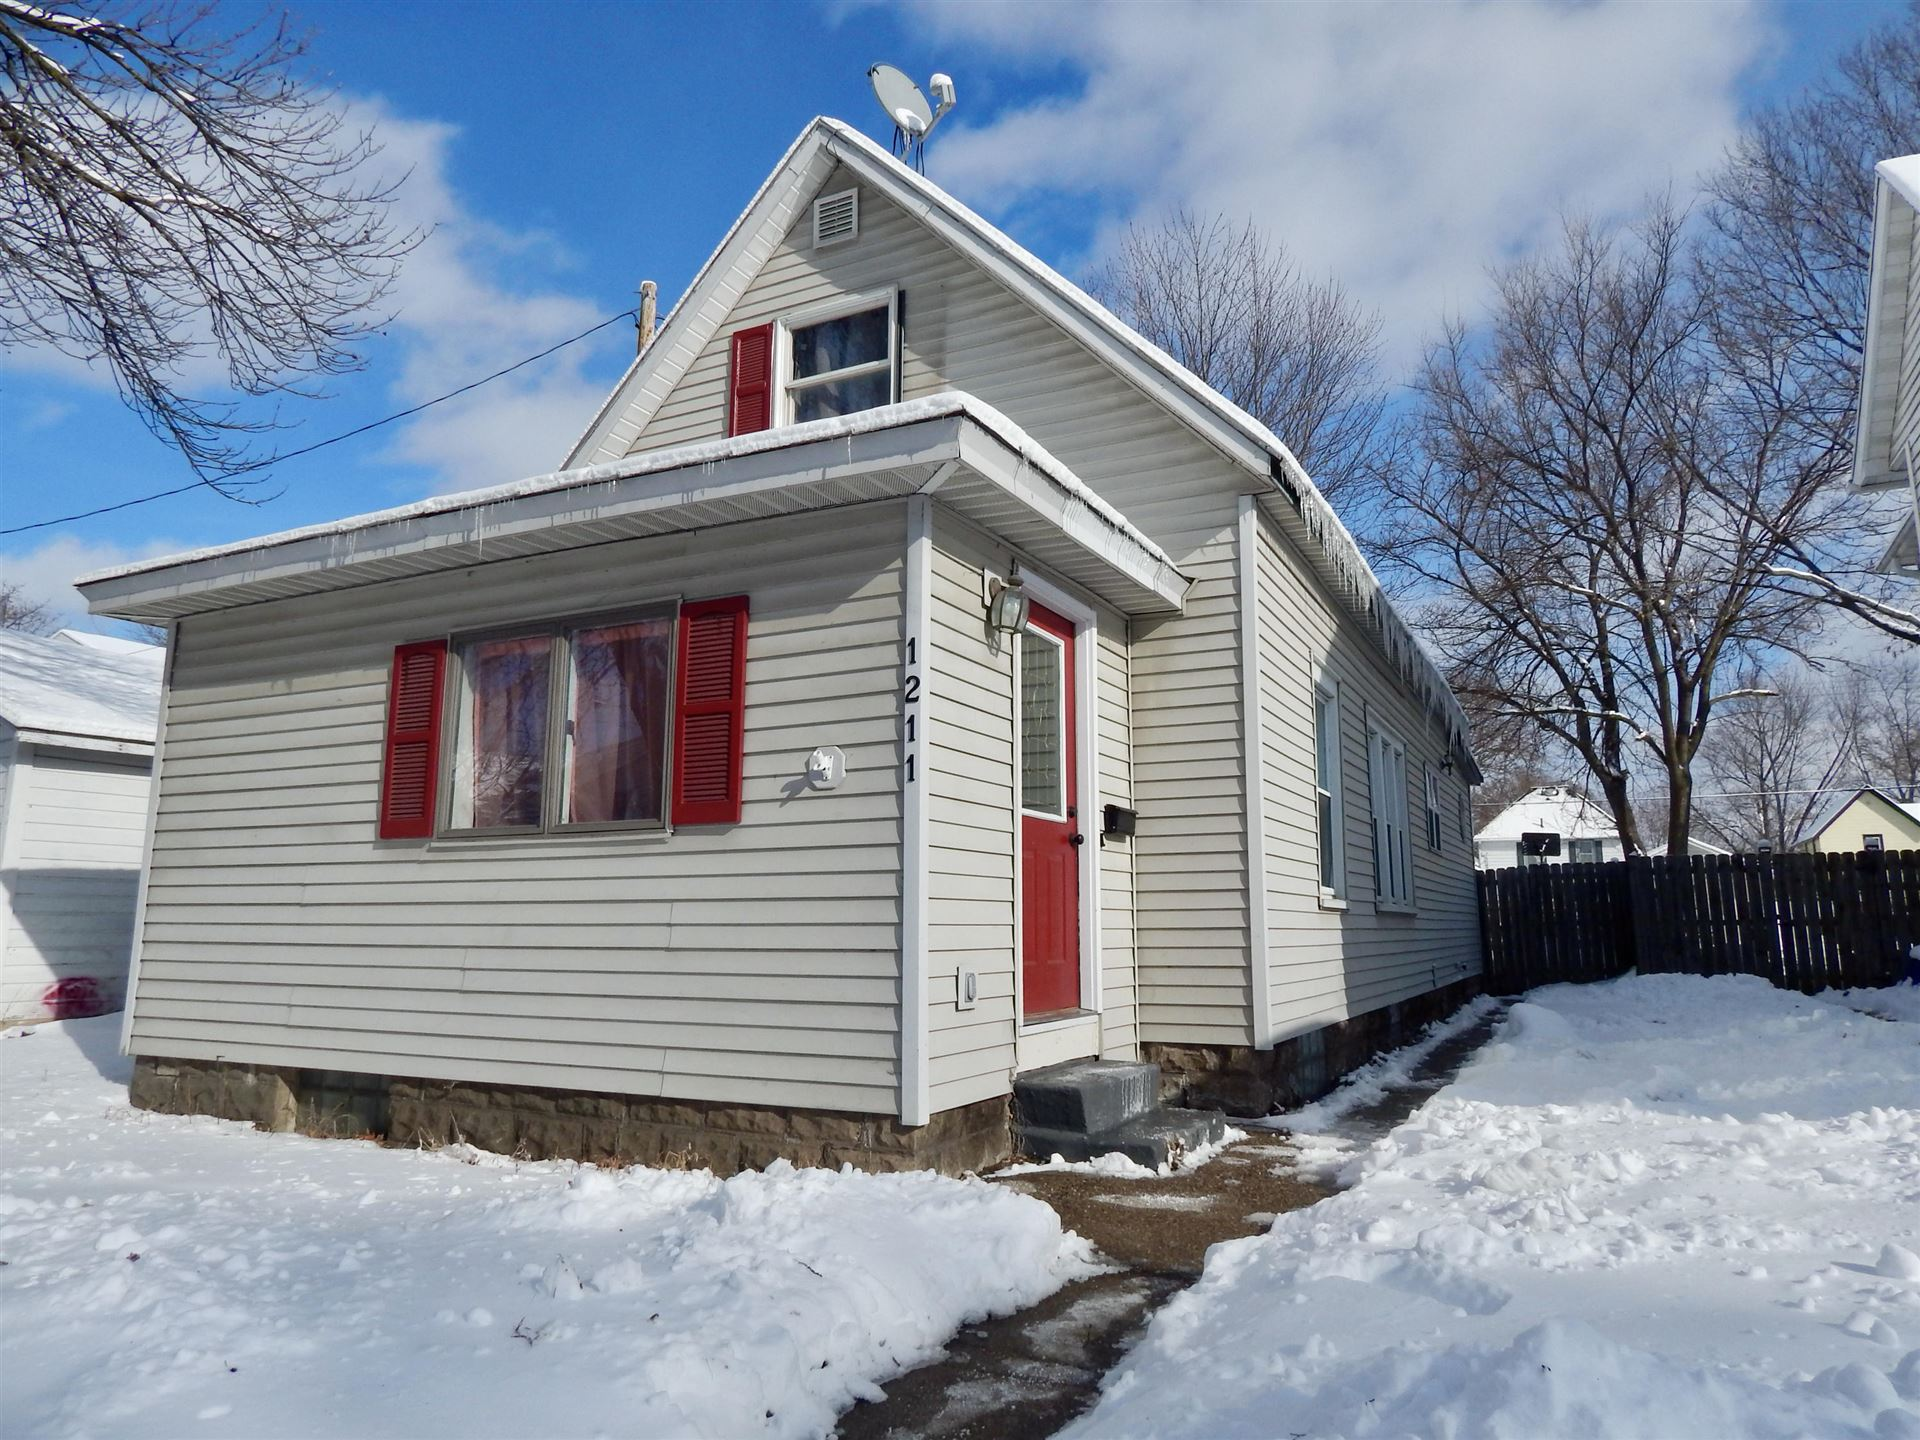 1211 5th Ave S, La Crosse, WI 54601 - MLS#: 1727884